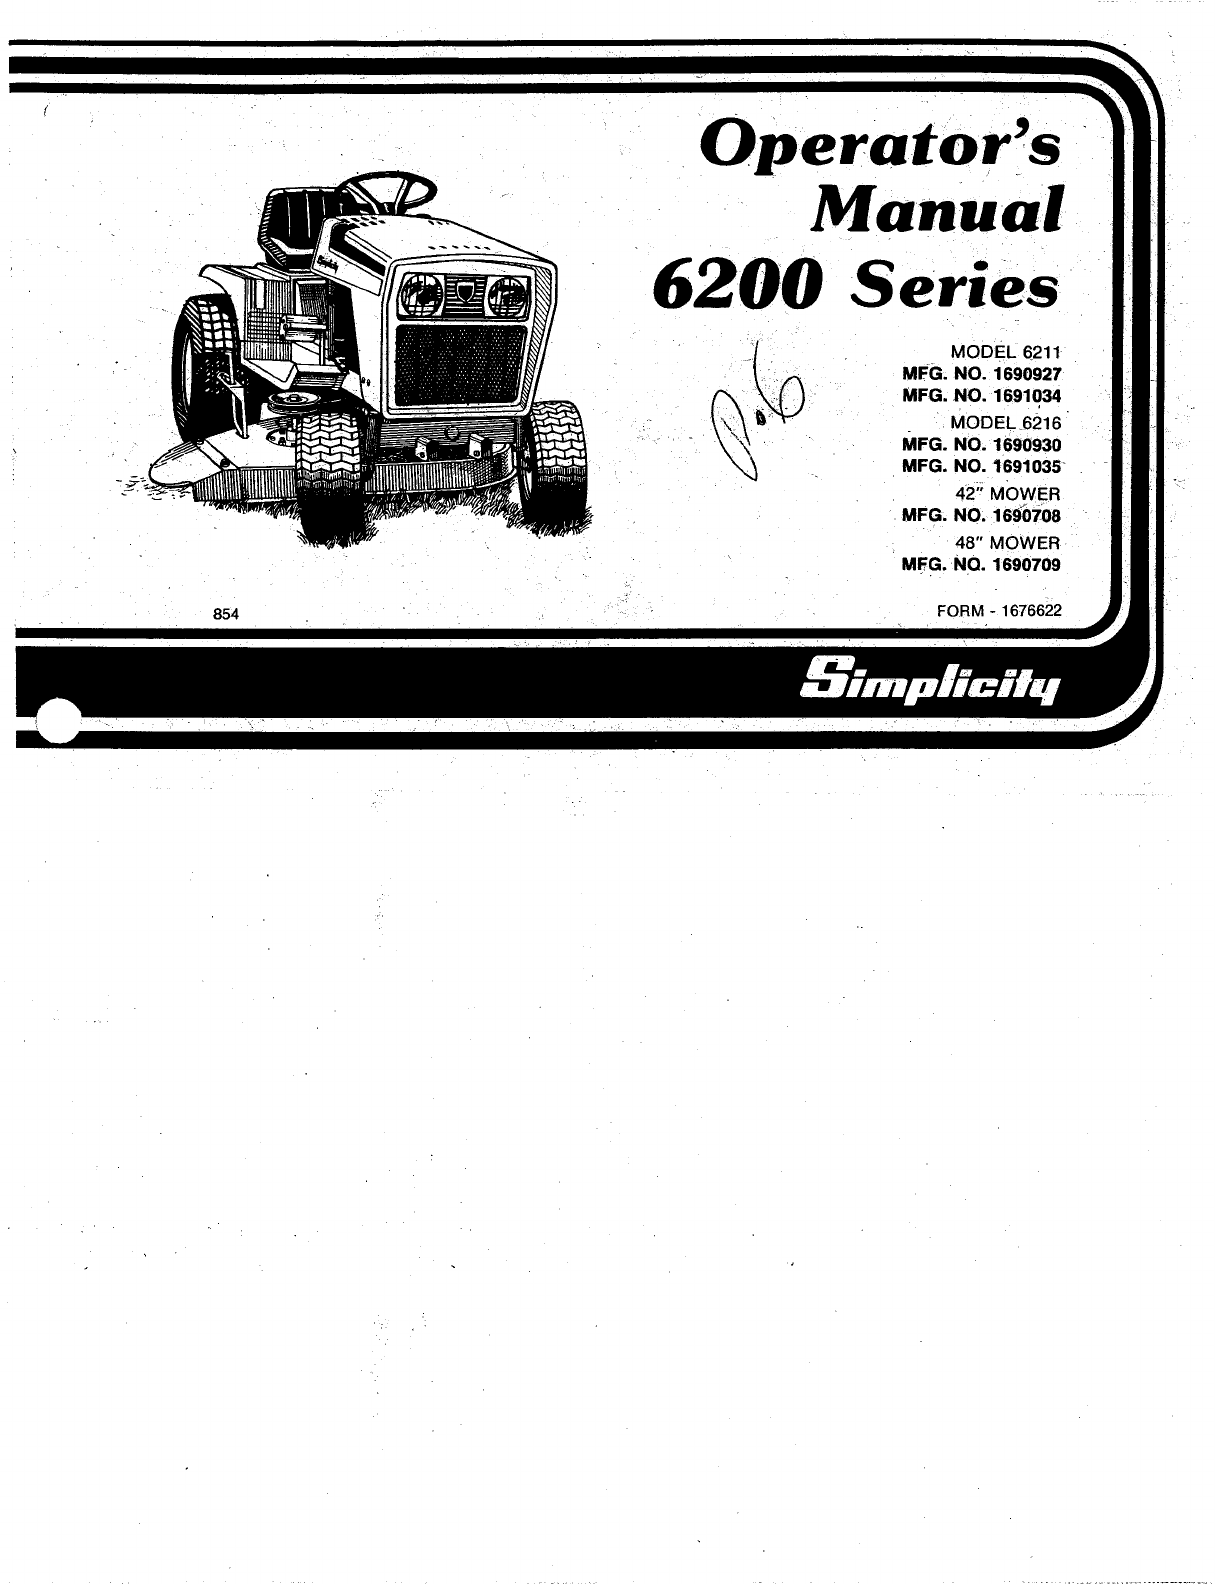 64ddbc8c 4486 4546 9931 916031792797 bg1 simplicity lawn mower 6211 user guide manualsonline com simplicity 6216 wiring diagram at bayanpartner.co